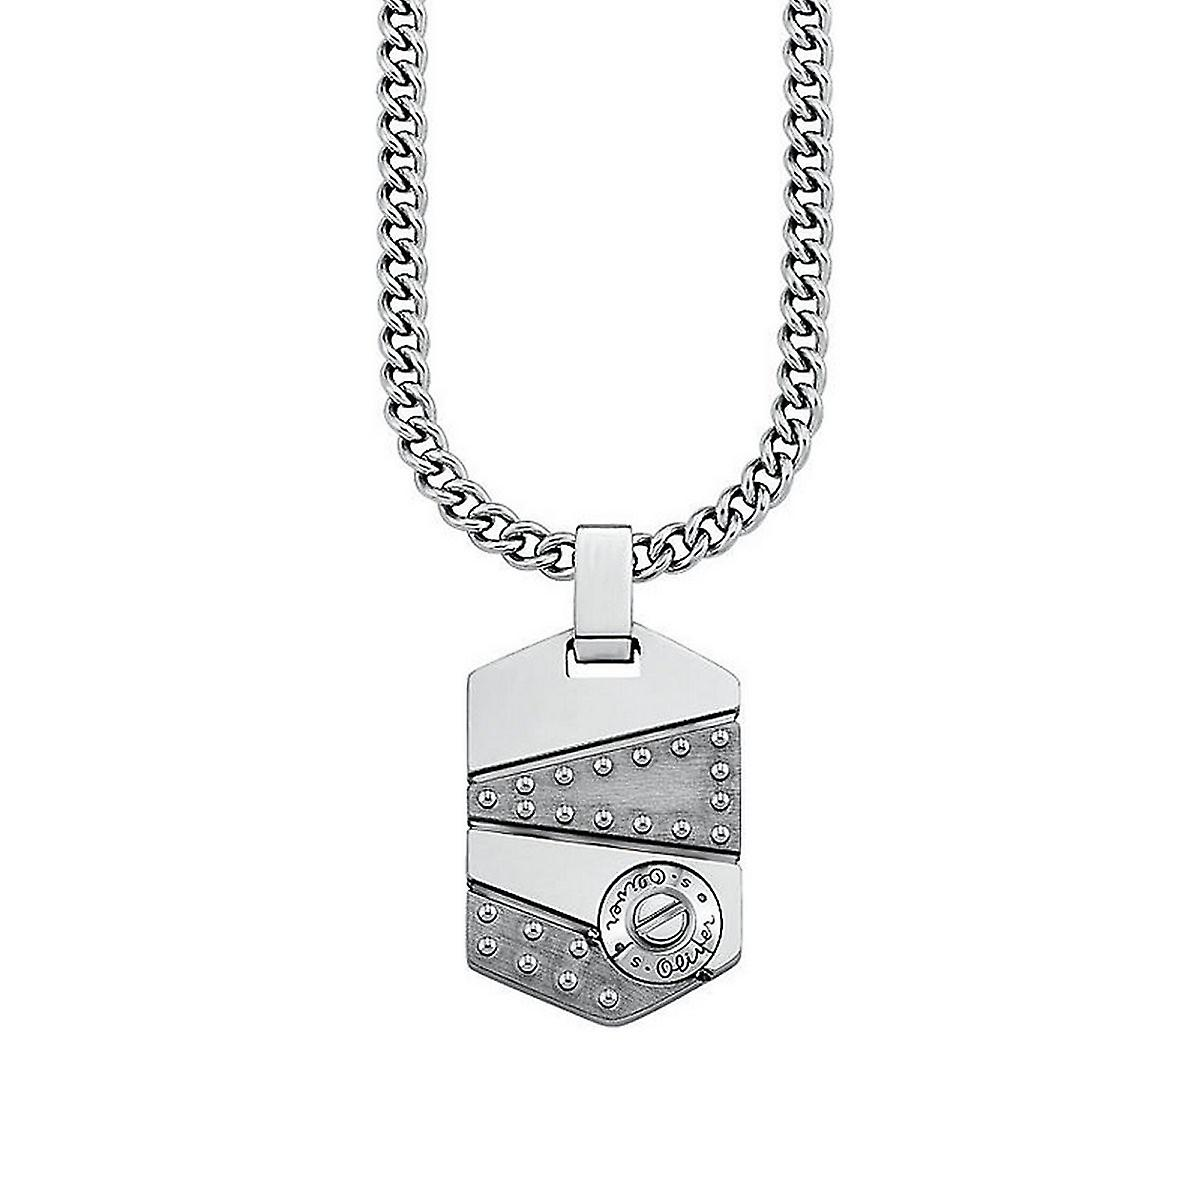 s.Oliver jewel mens necklace stainless steel SO921/1 - 441162